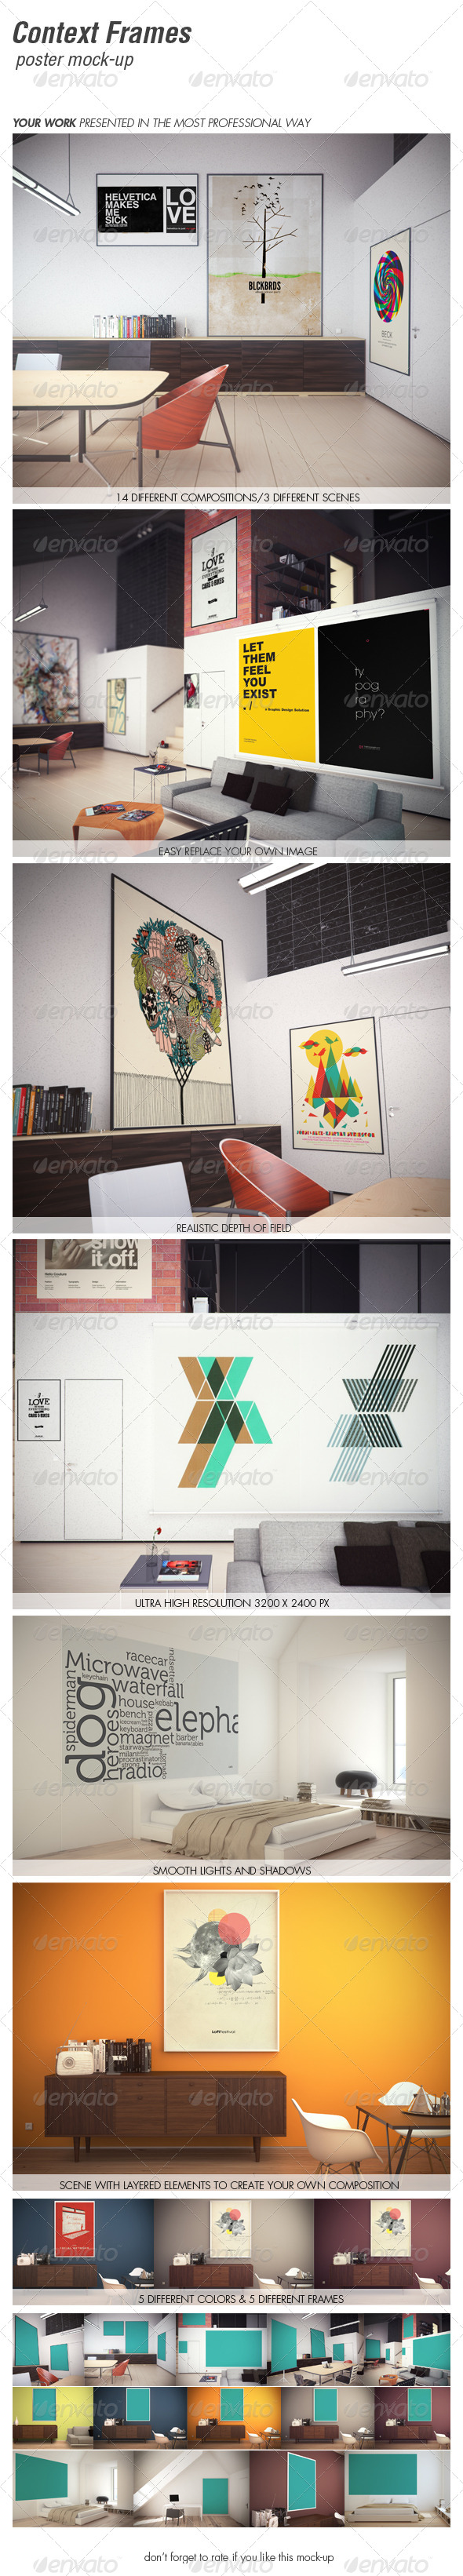 GraphicRiver CONTEXT FRAMES poster mock-up vol 2 5218827